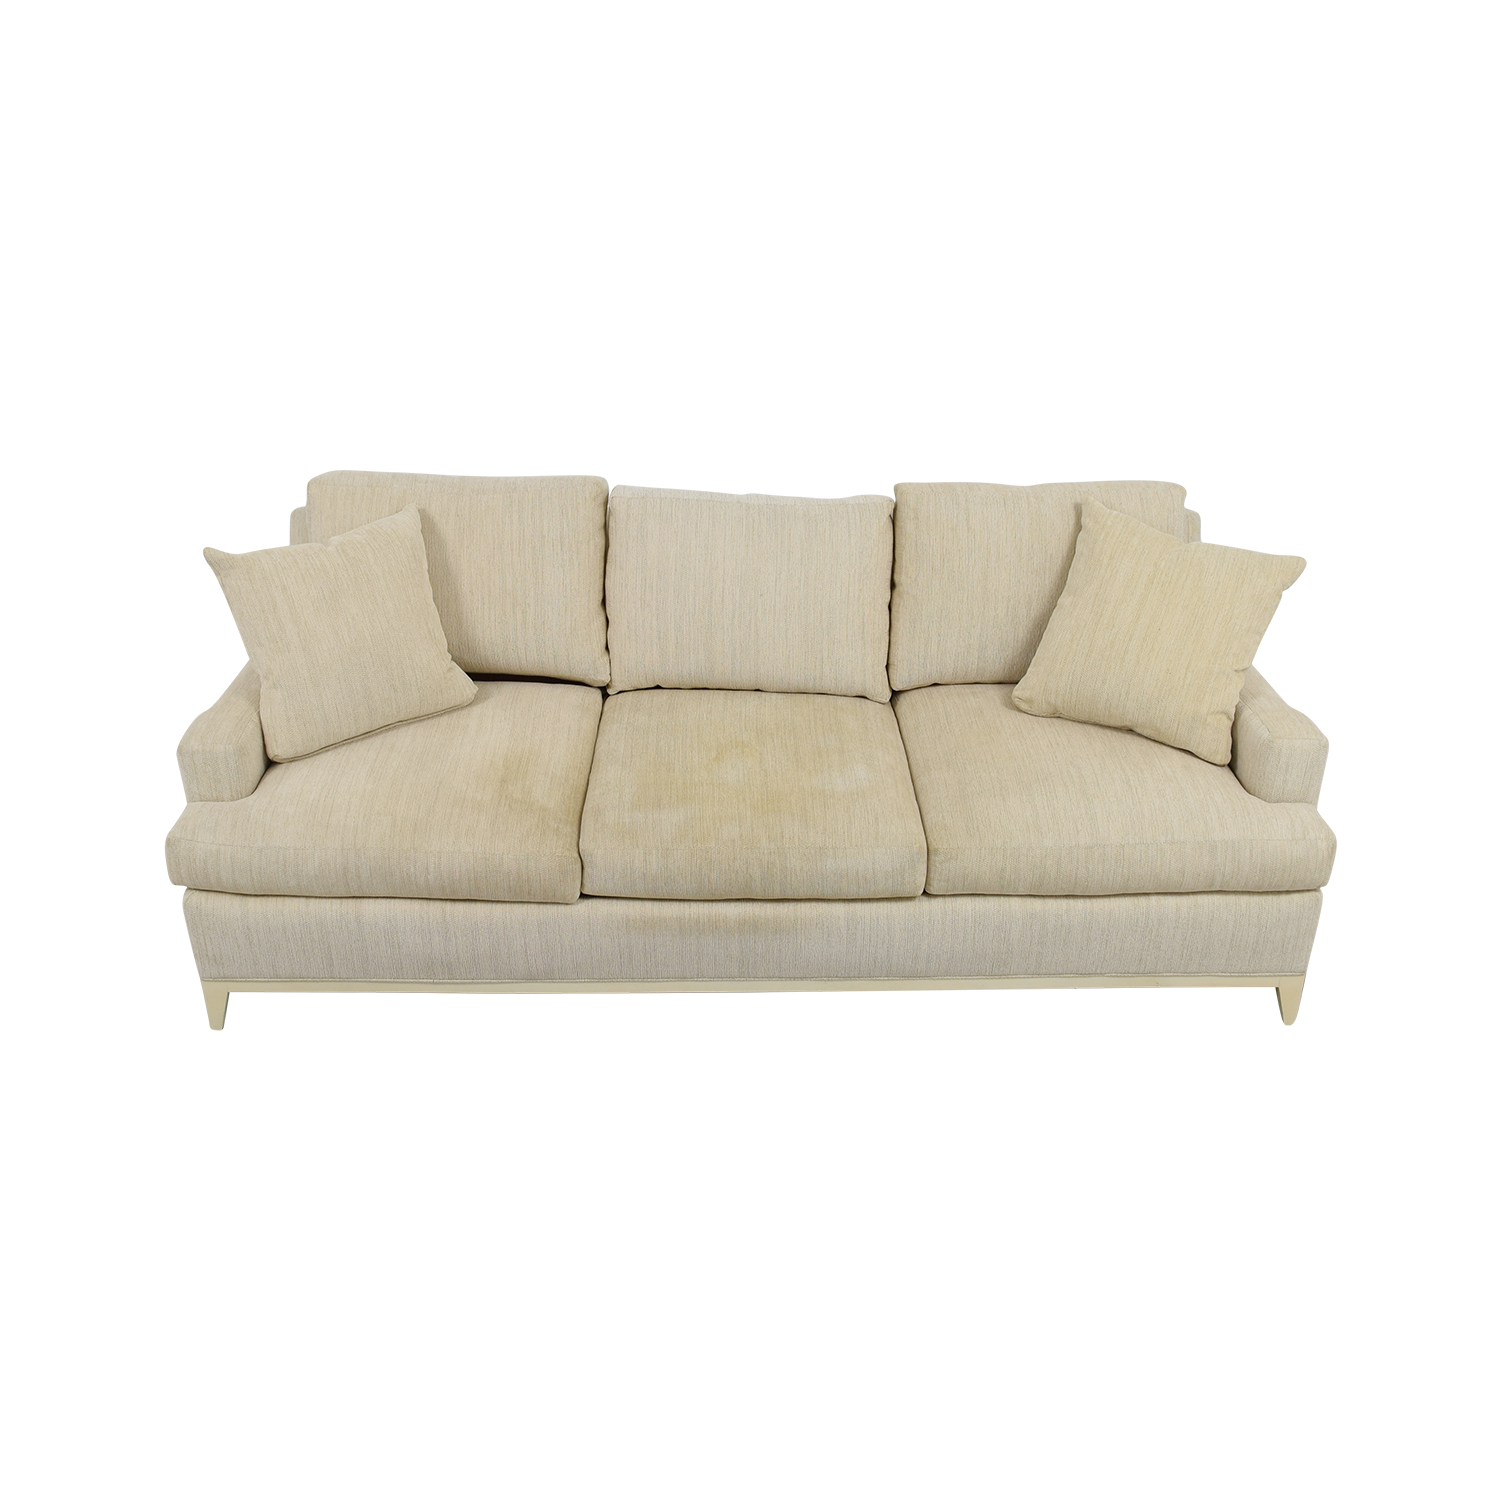 buy Hickory Chair Hickory Chair 9th Street Sofa online